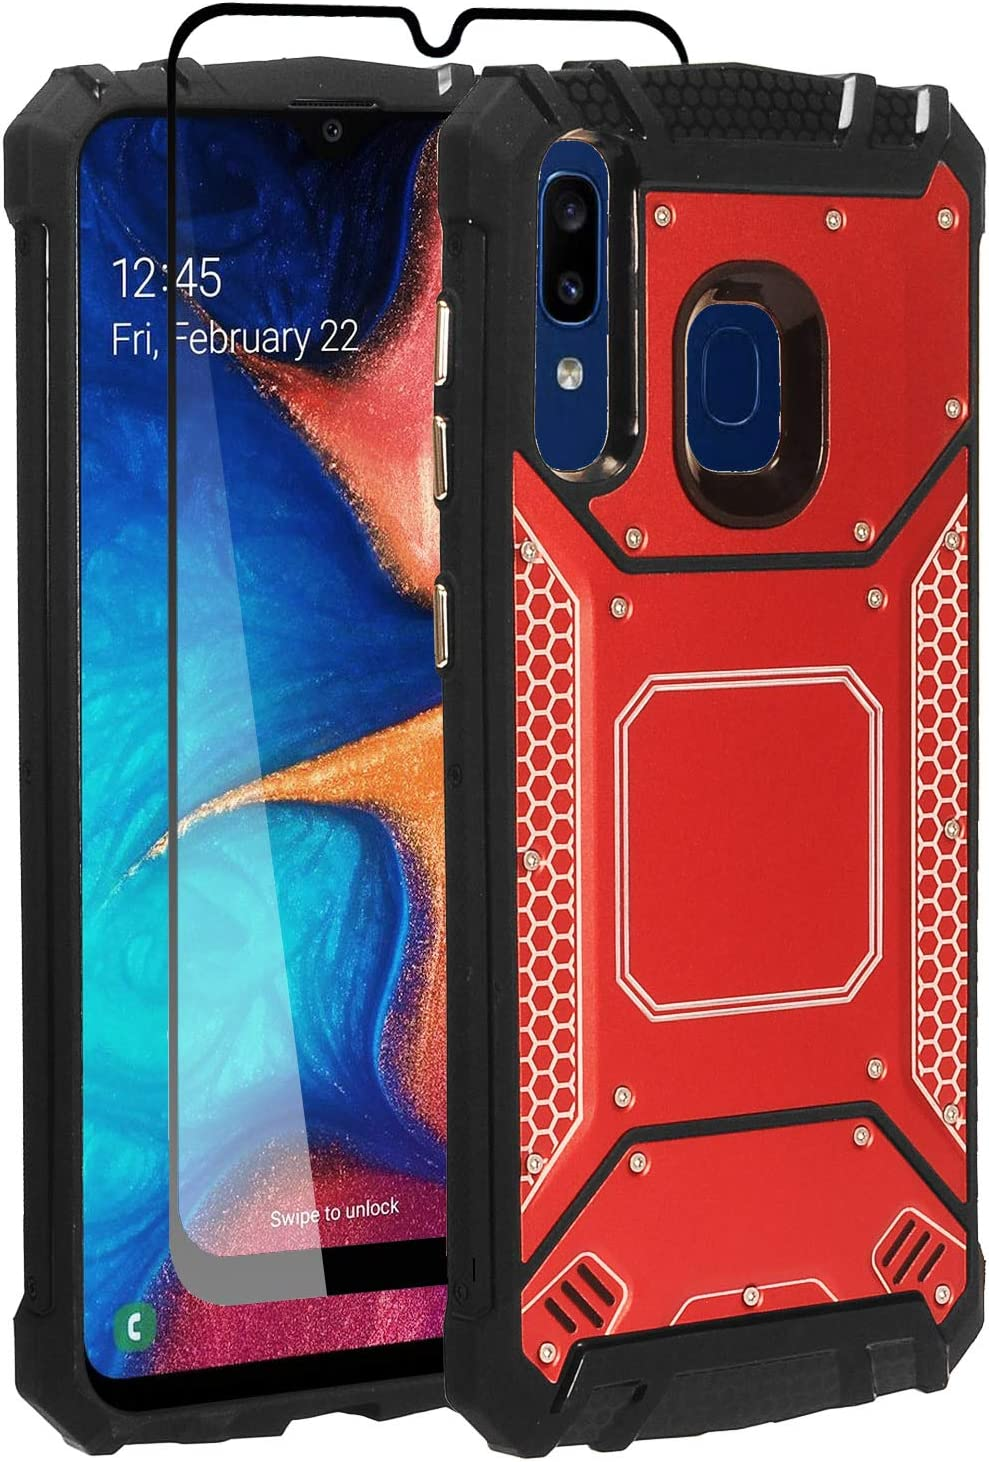 Compatible with Samsung Galaxy A20, Galaxy A50 - Aluminum Metal Hybrid Phone Case + Tempered Glass Screen Protector - ZY1 Red